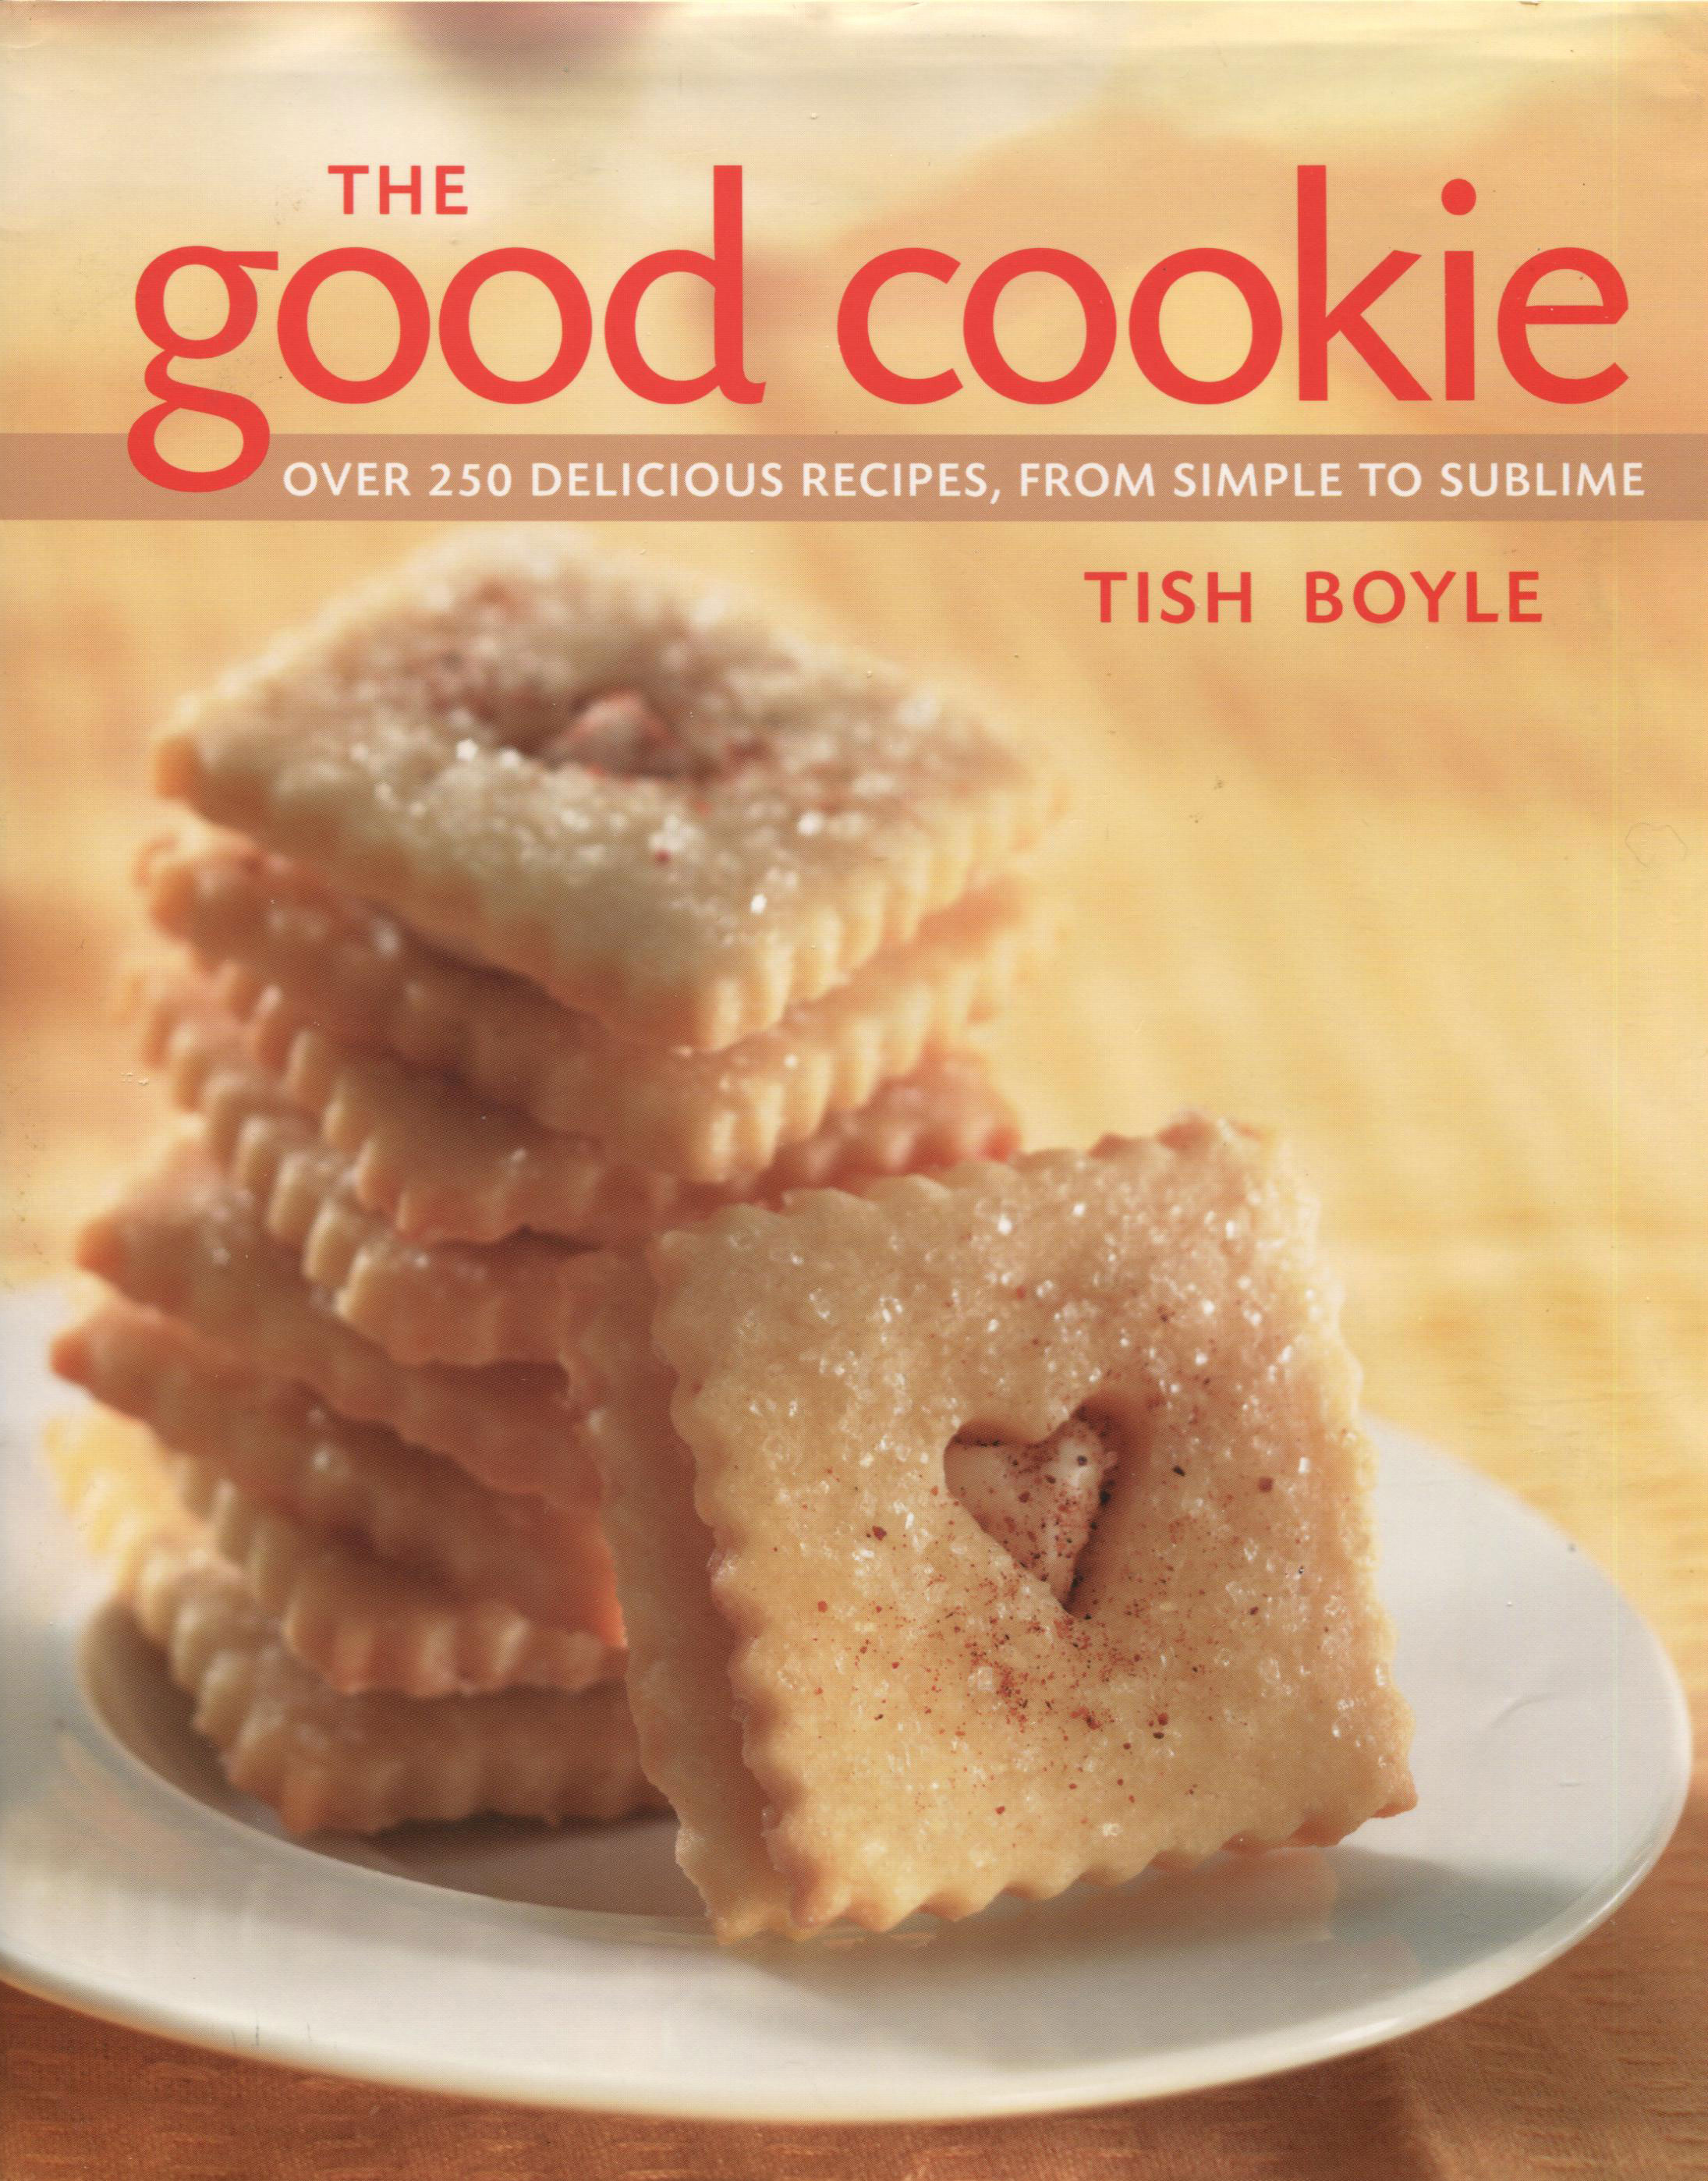 TBT Cookbook Review: The Good Cookie by Tish Boyle